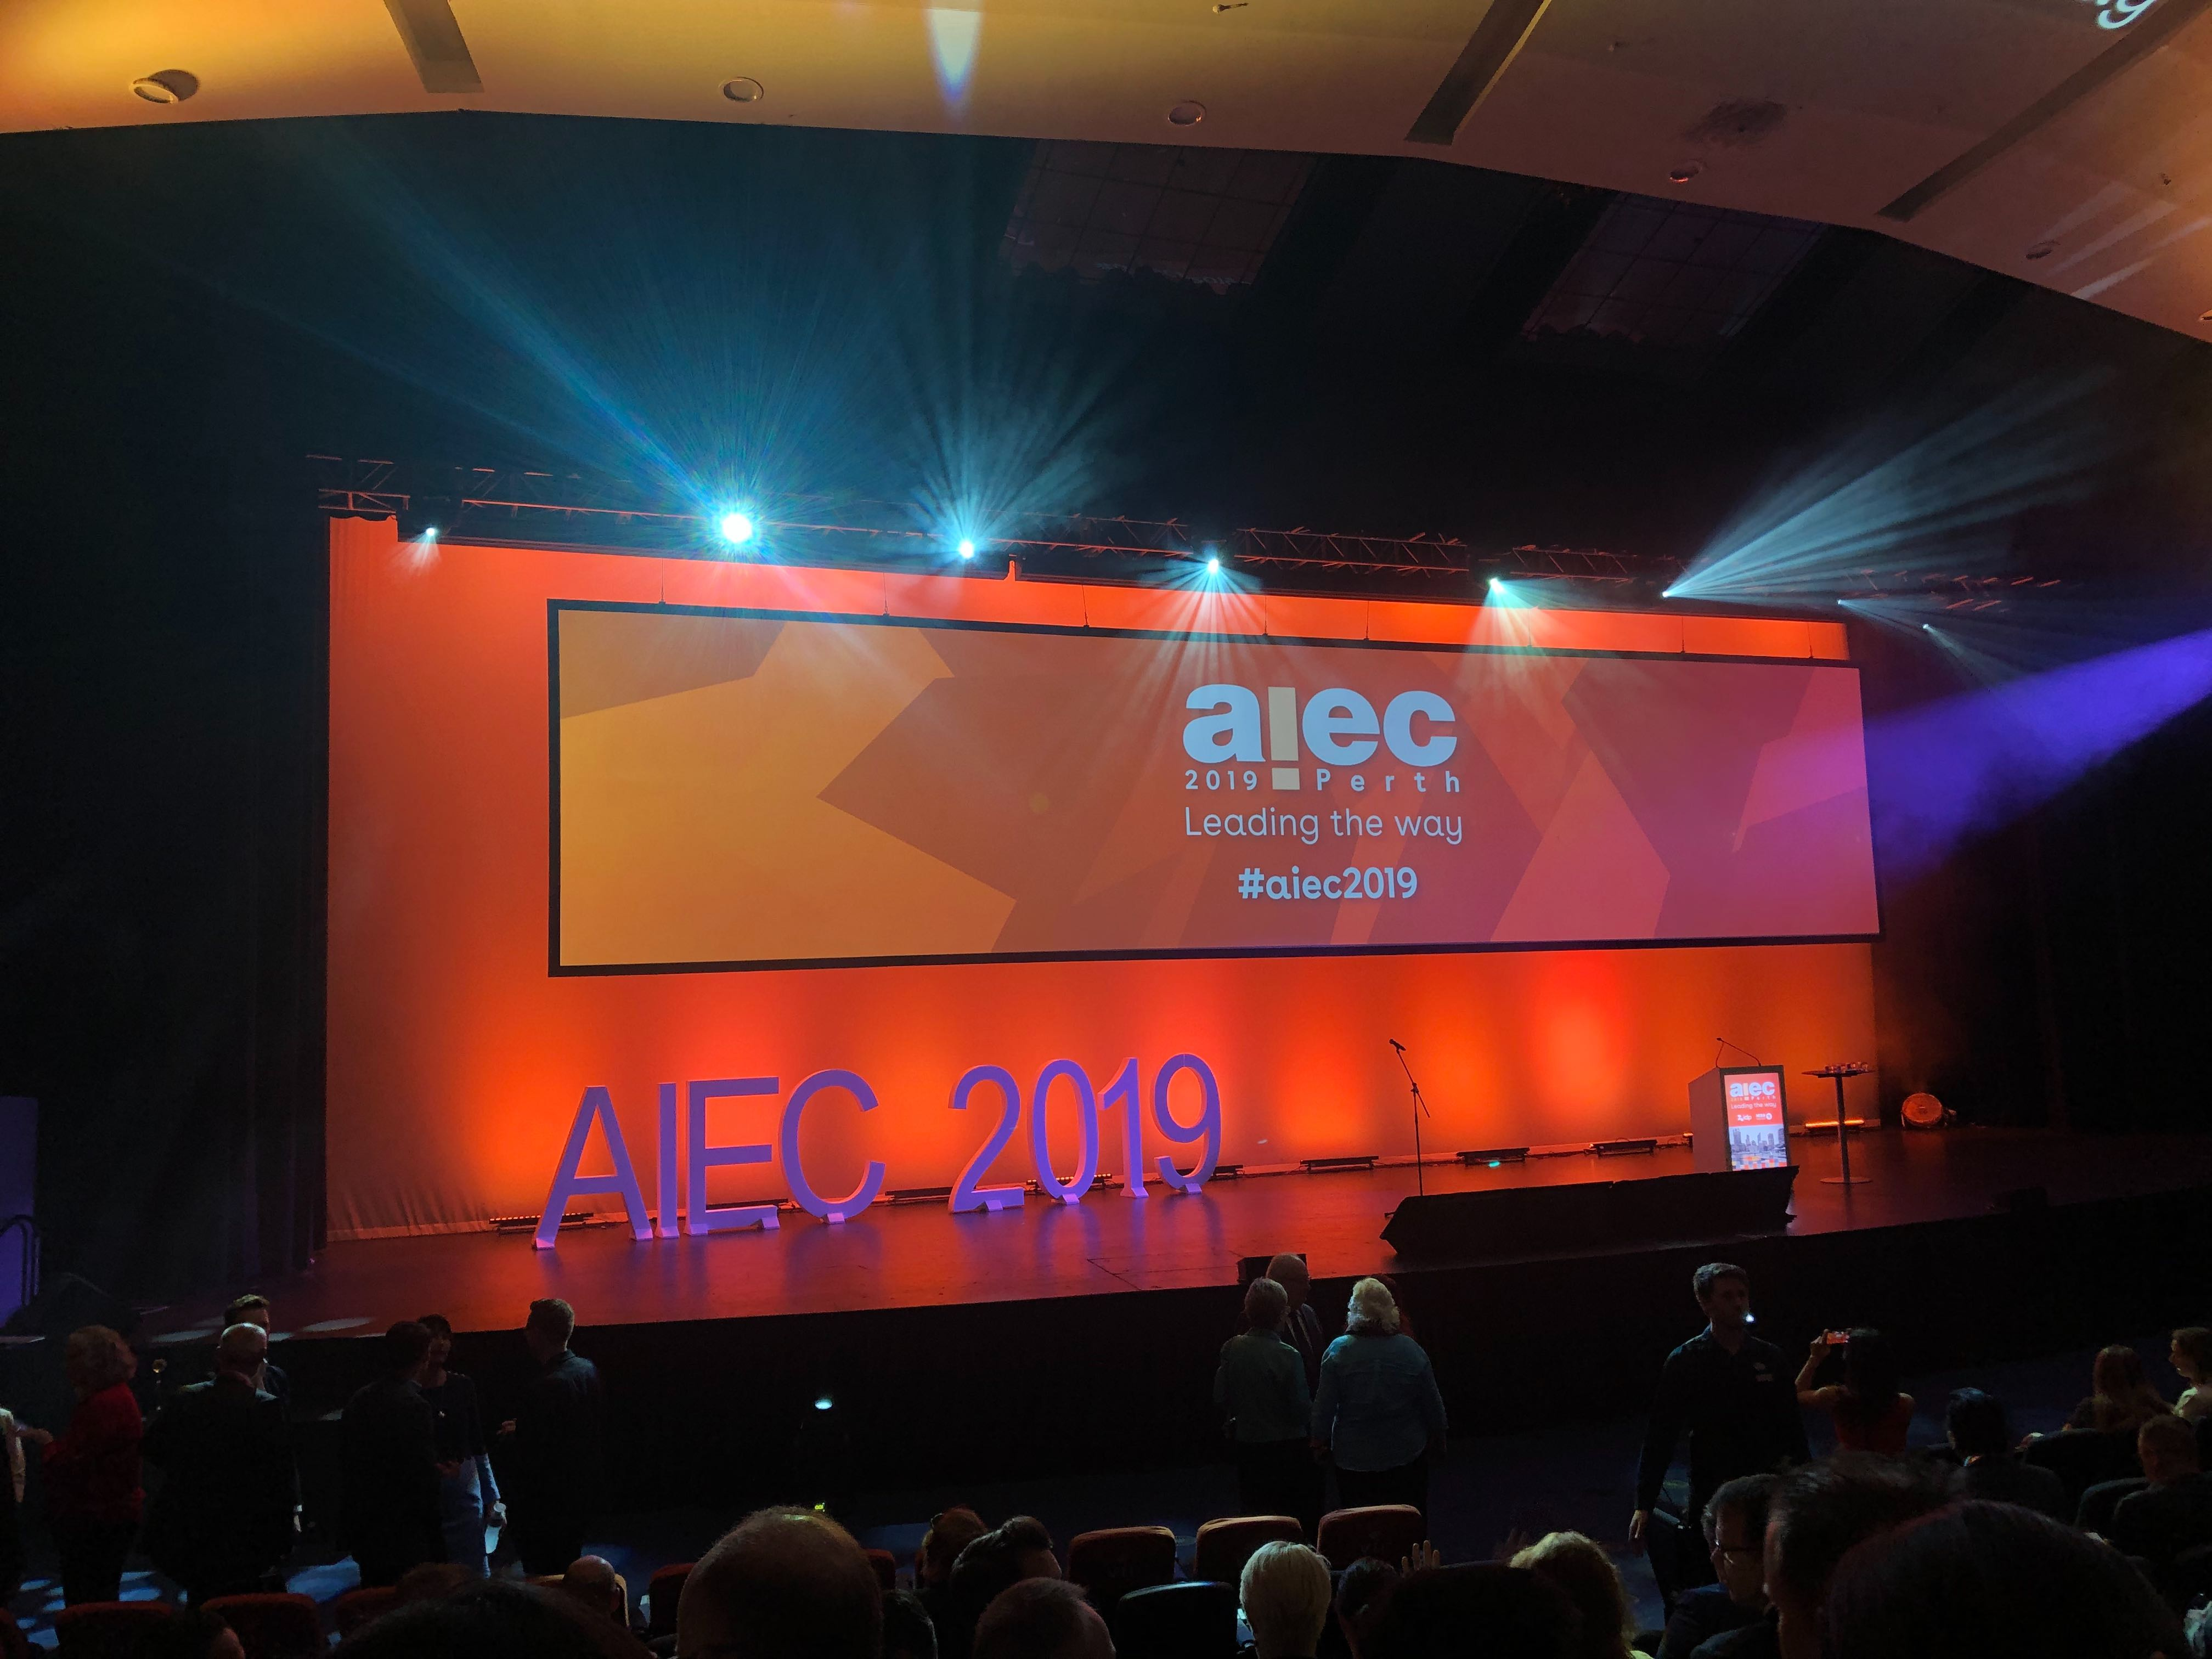 Aiec opening ceremony